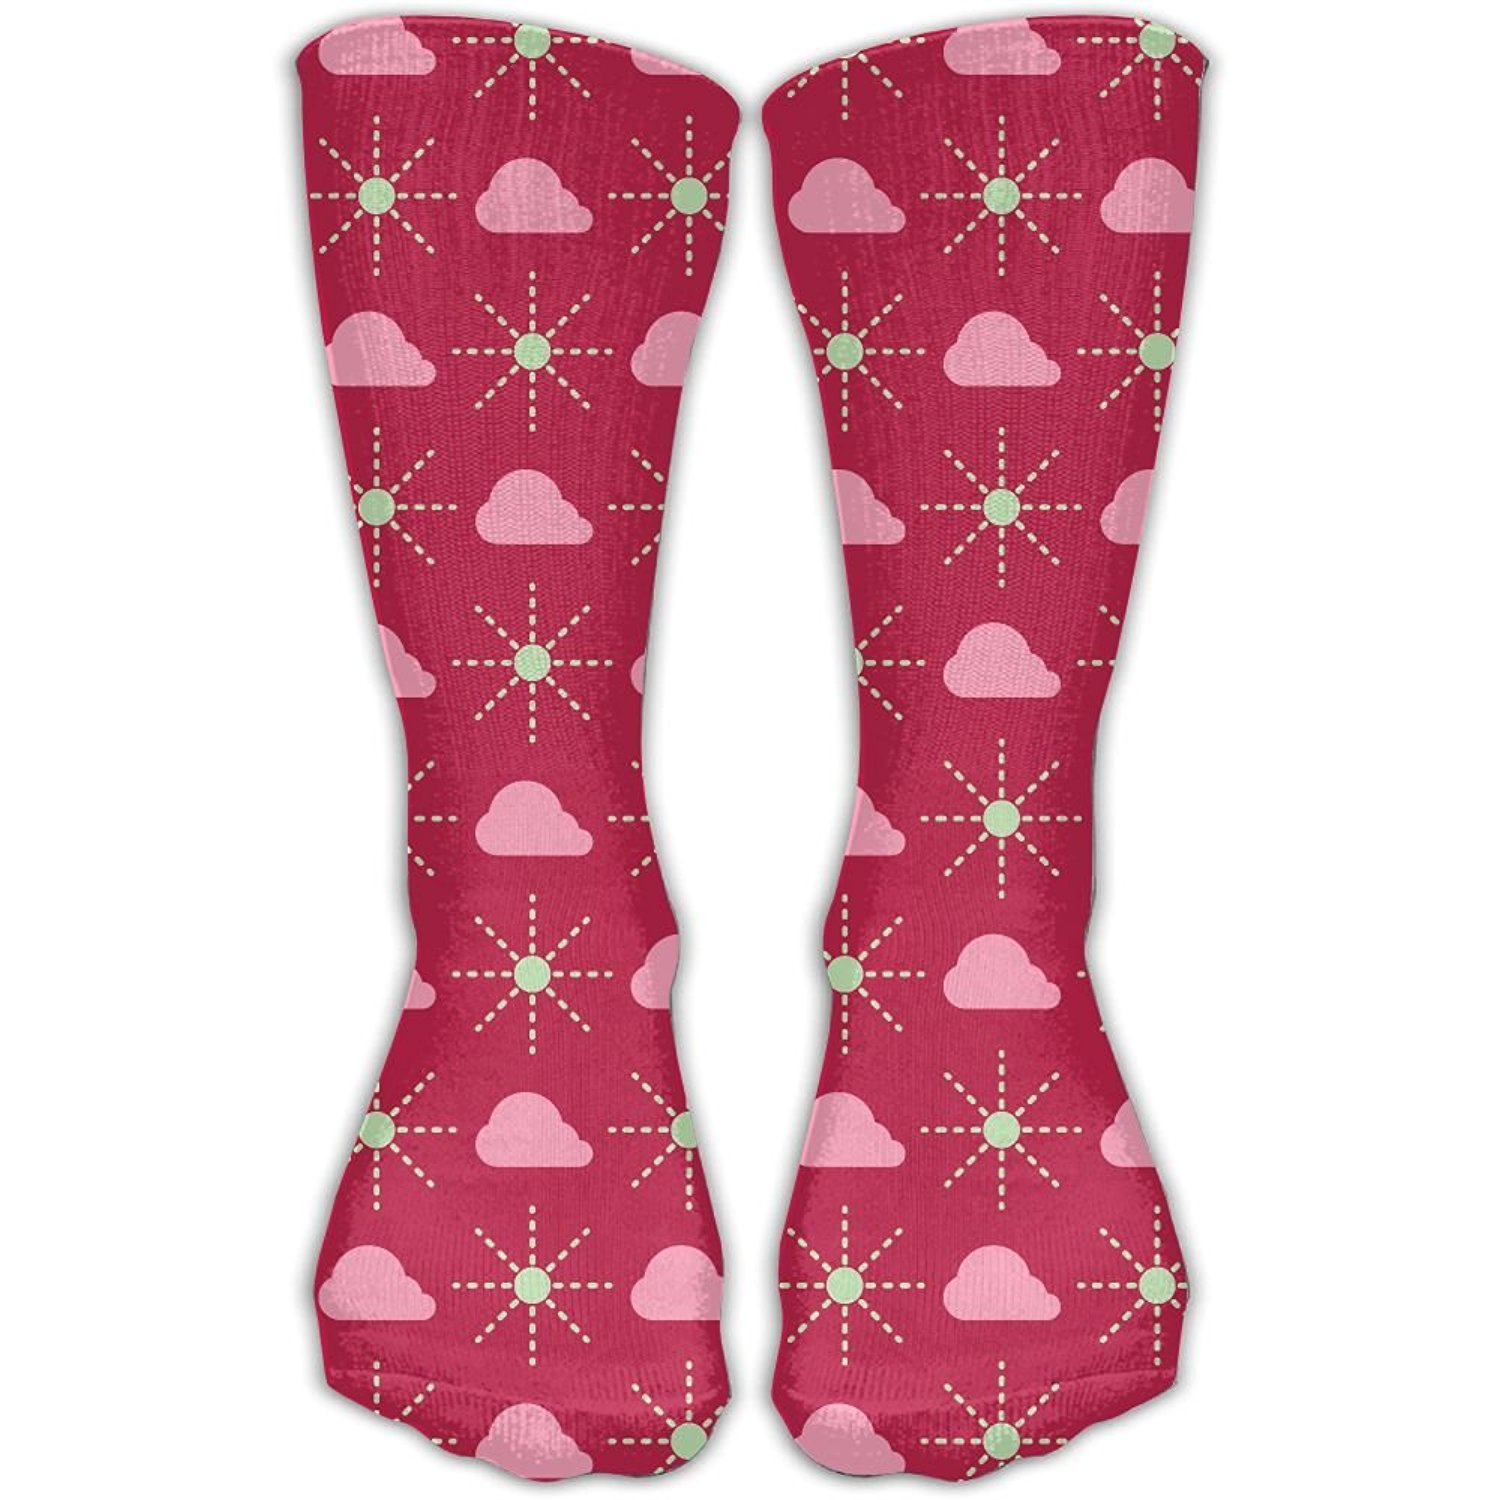 5939581e3 Get Quotations · XYMNZGS Flower Fun Womens Socks Womens Dress Crew Socks  Softball Girl Socks